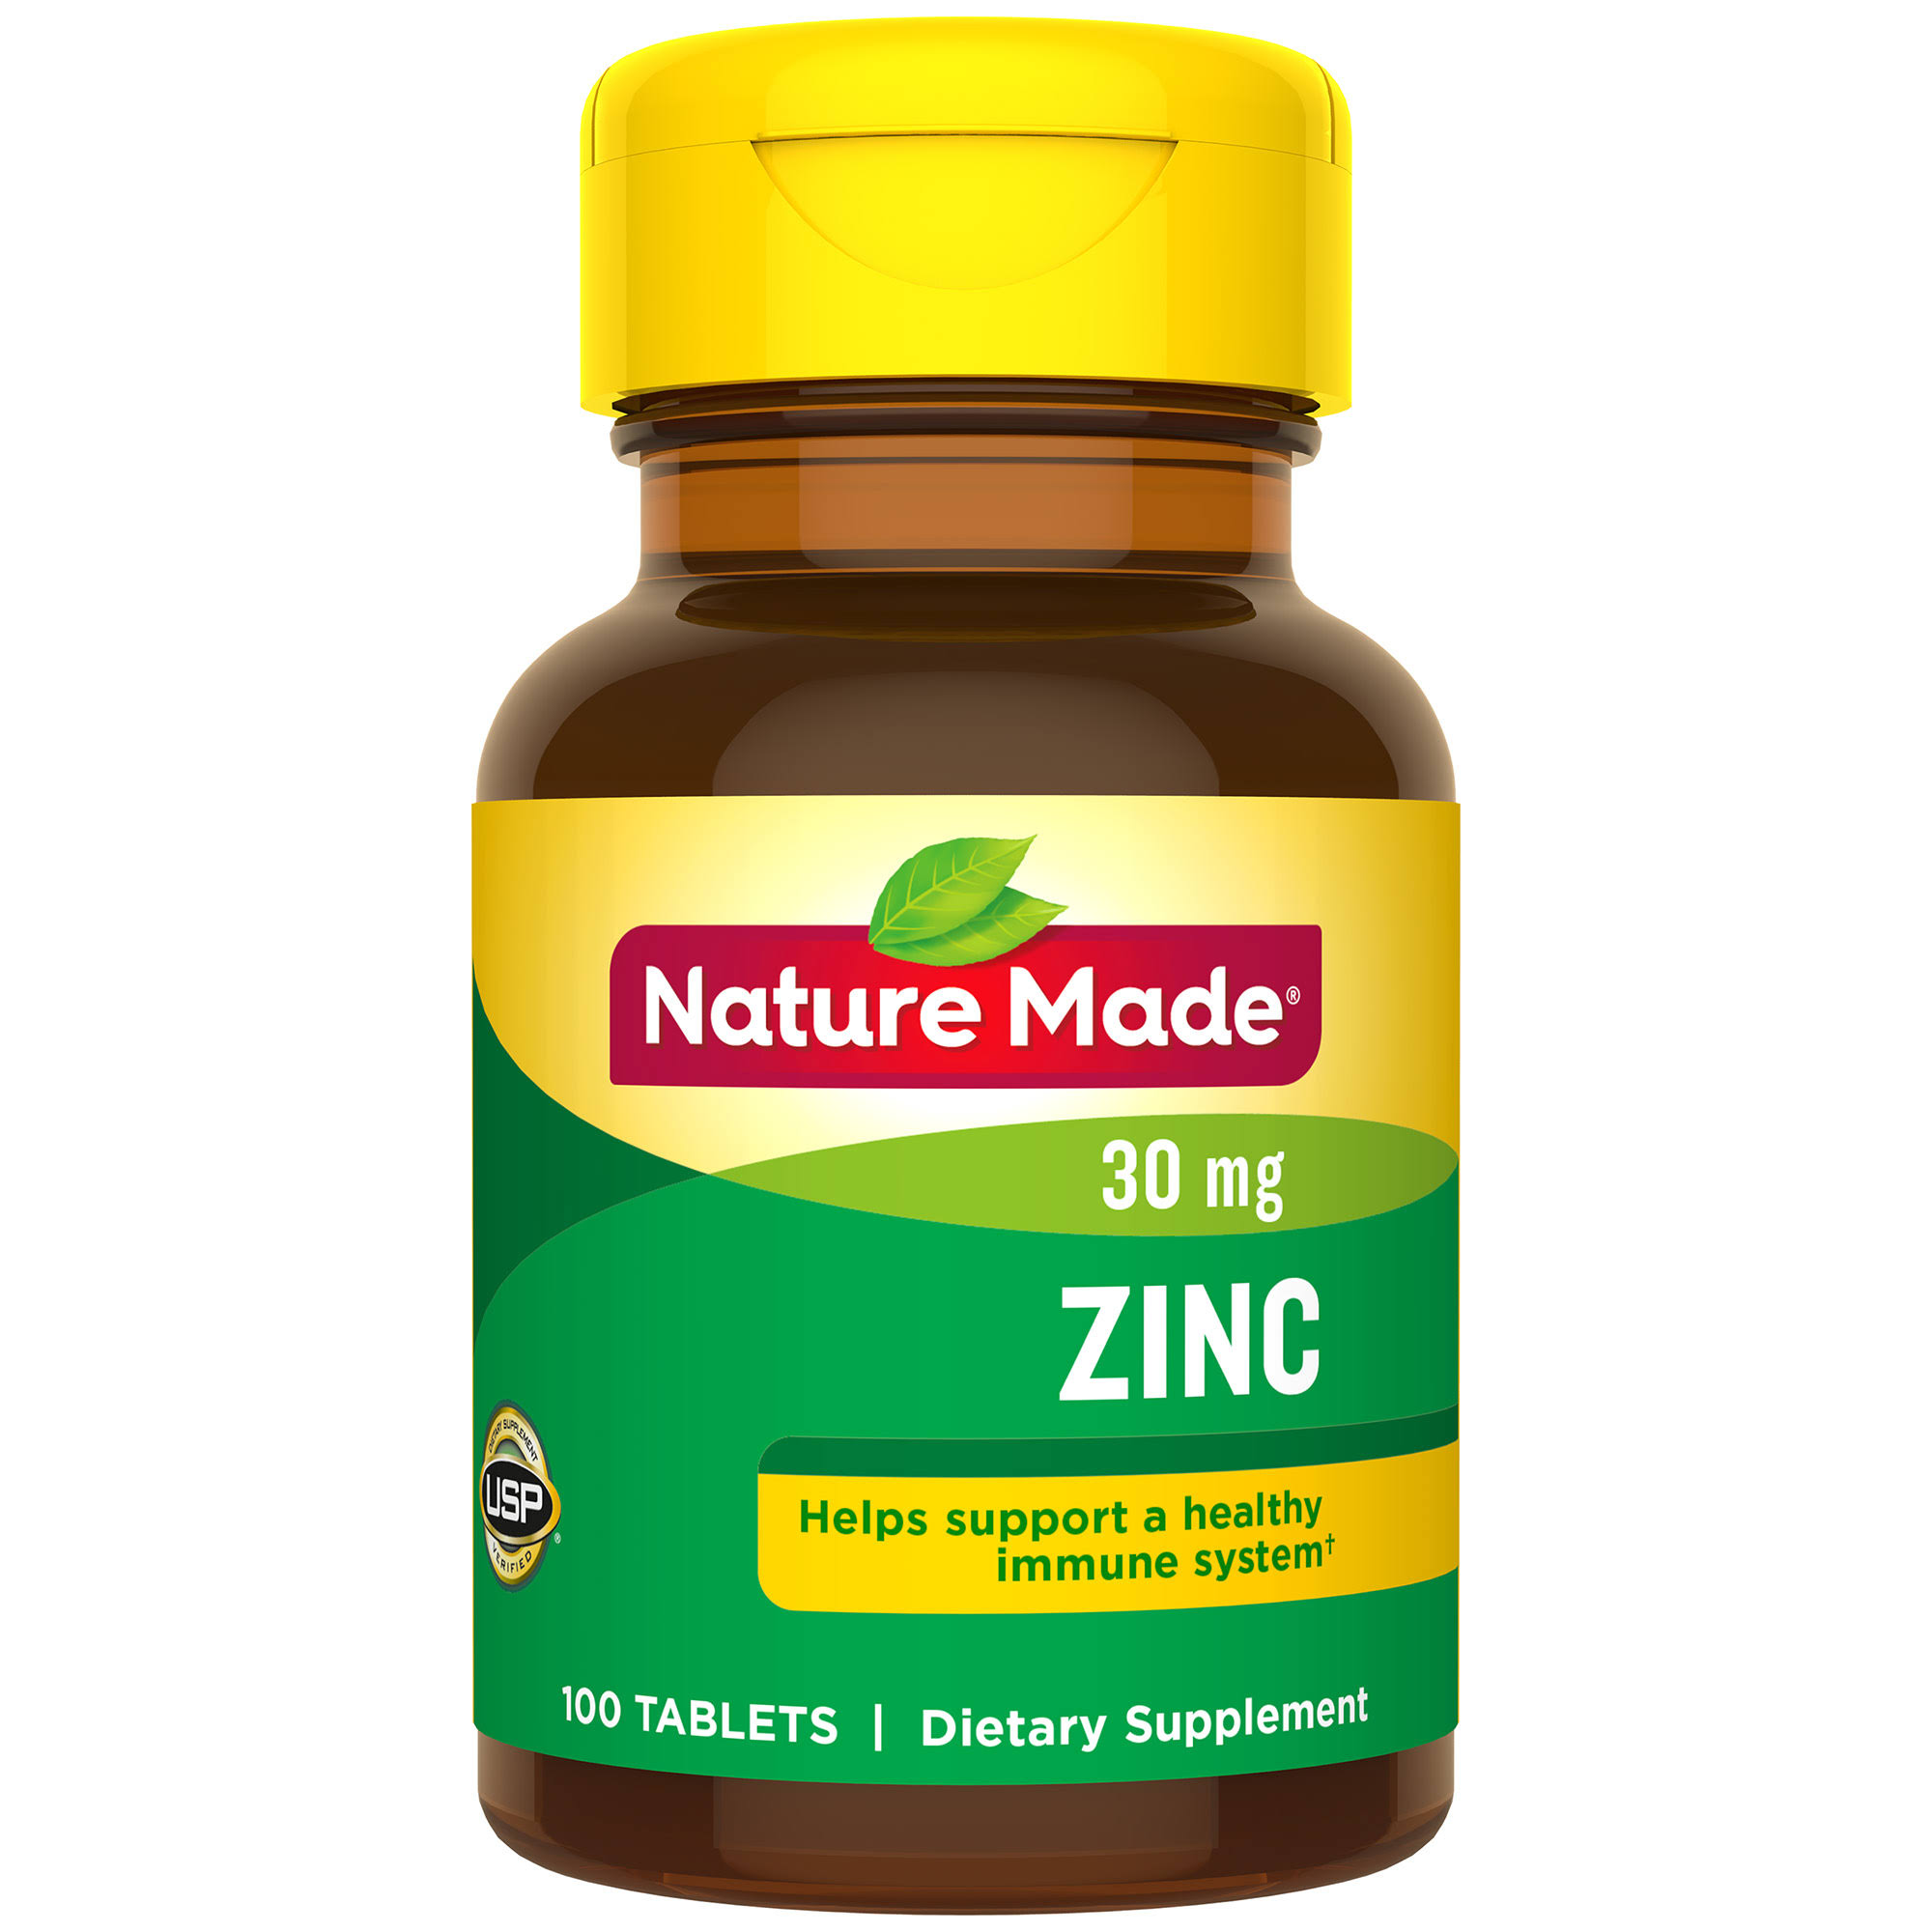 Nature Made Zinc 30mg Tablets - x100